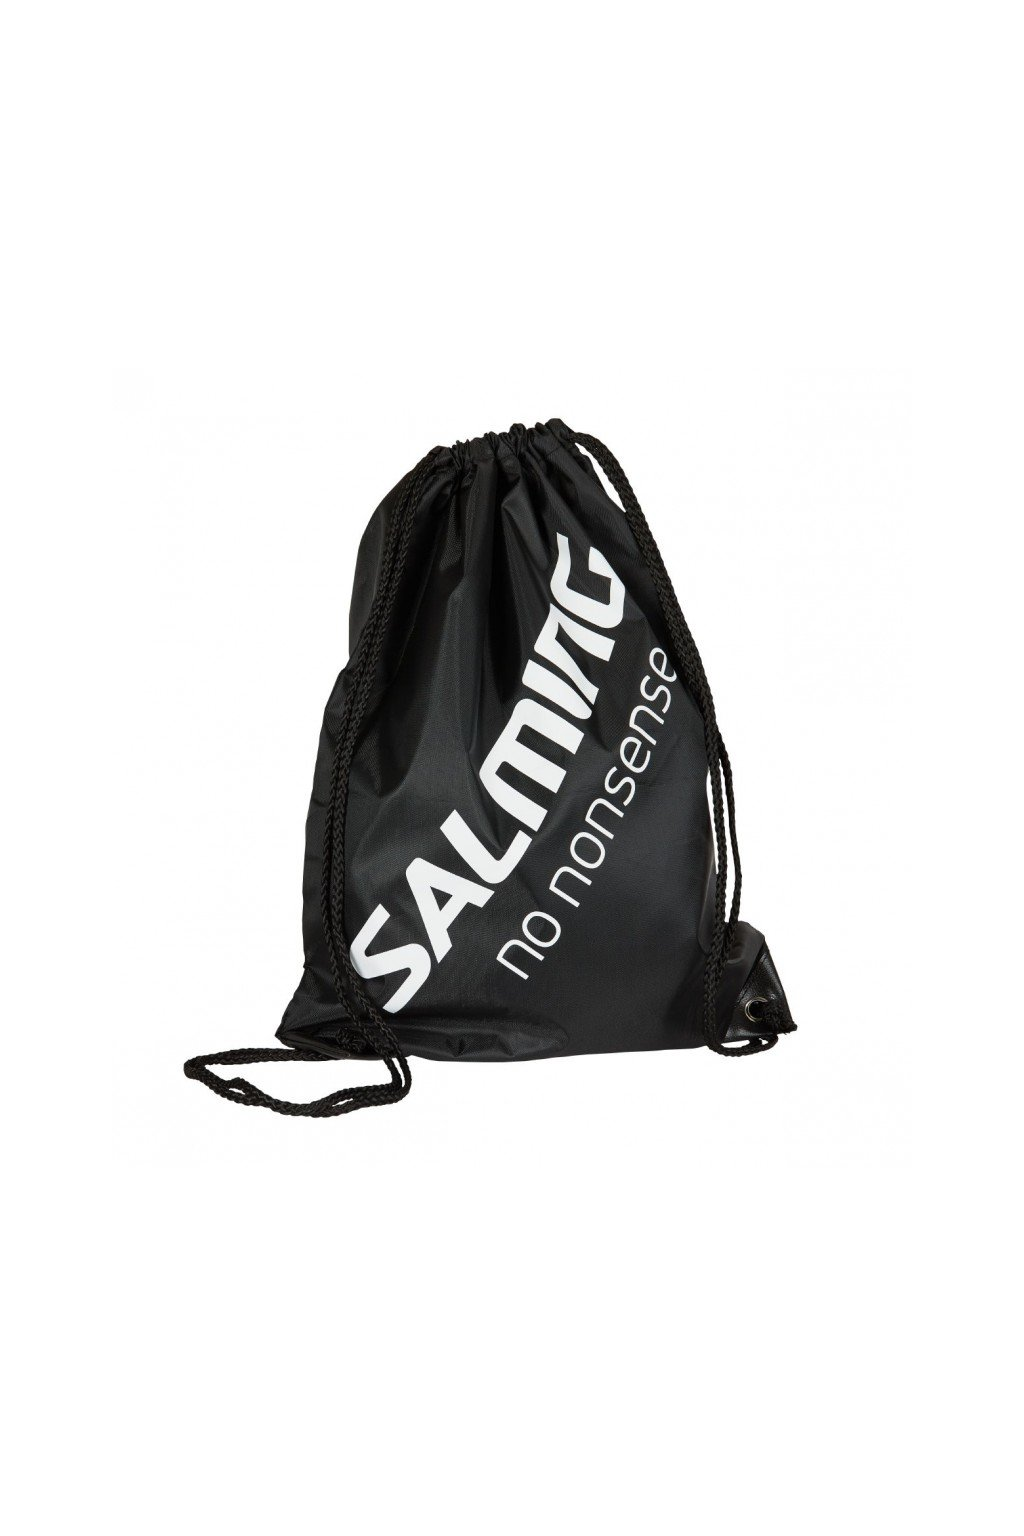 salming gym bag 40x50 cm black